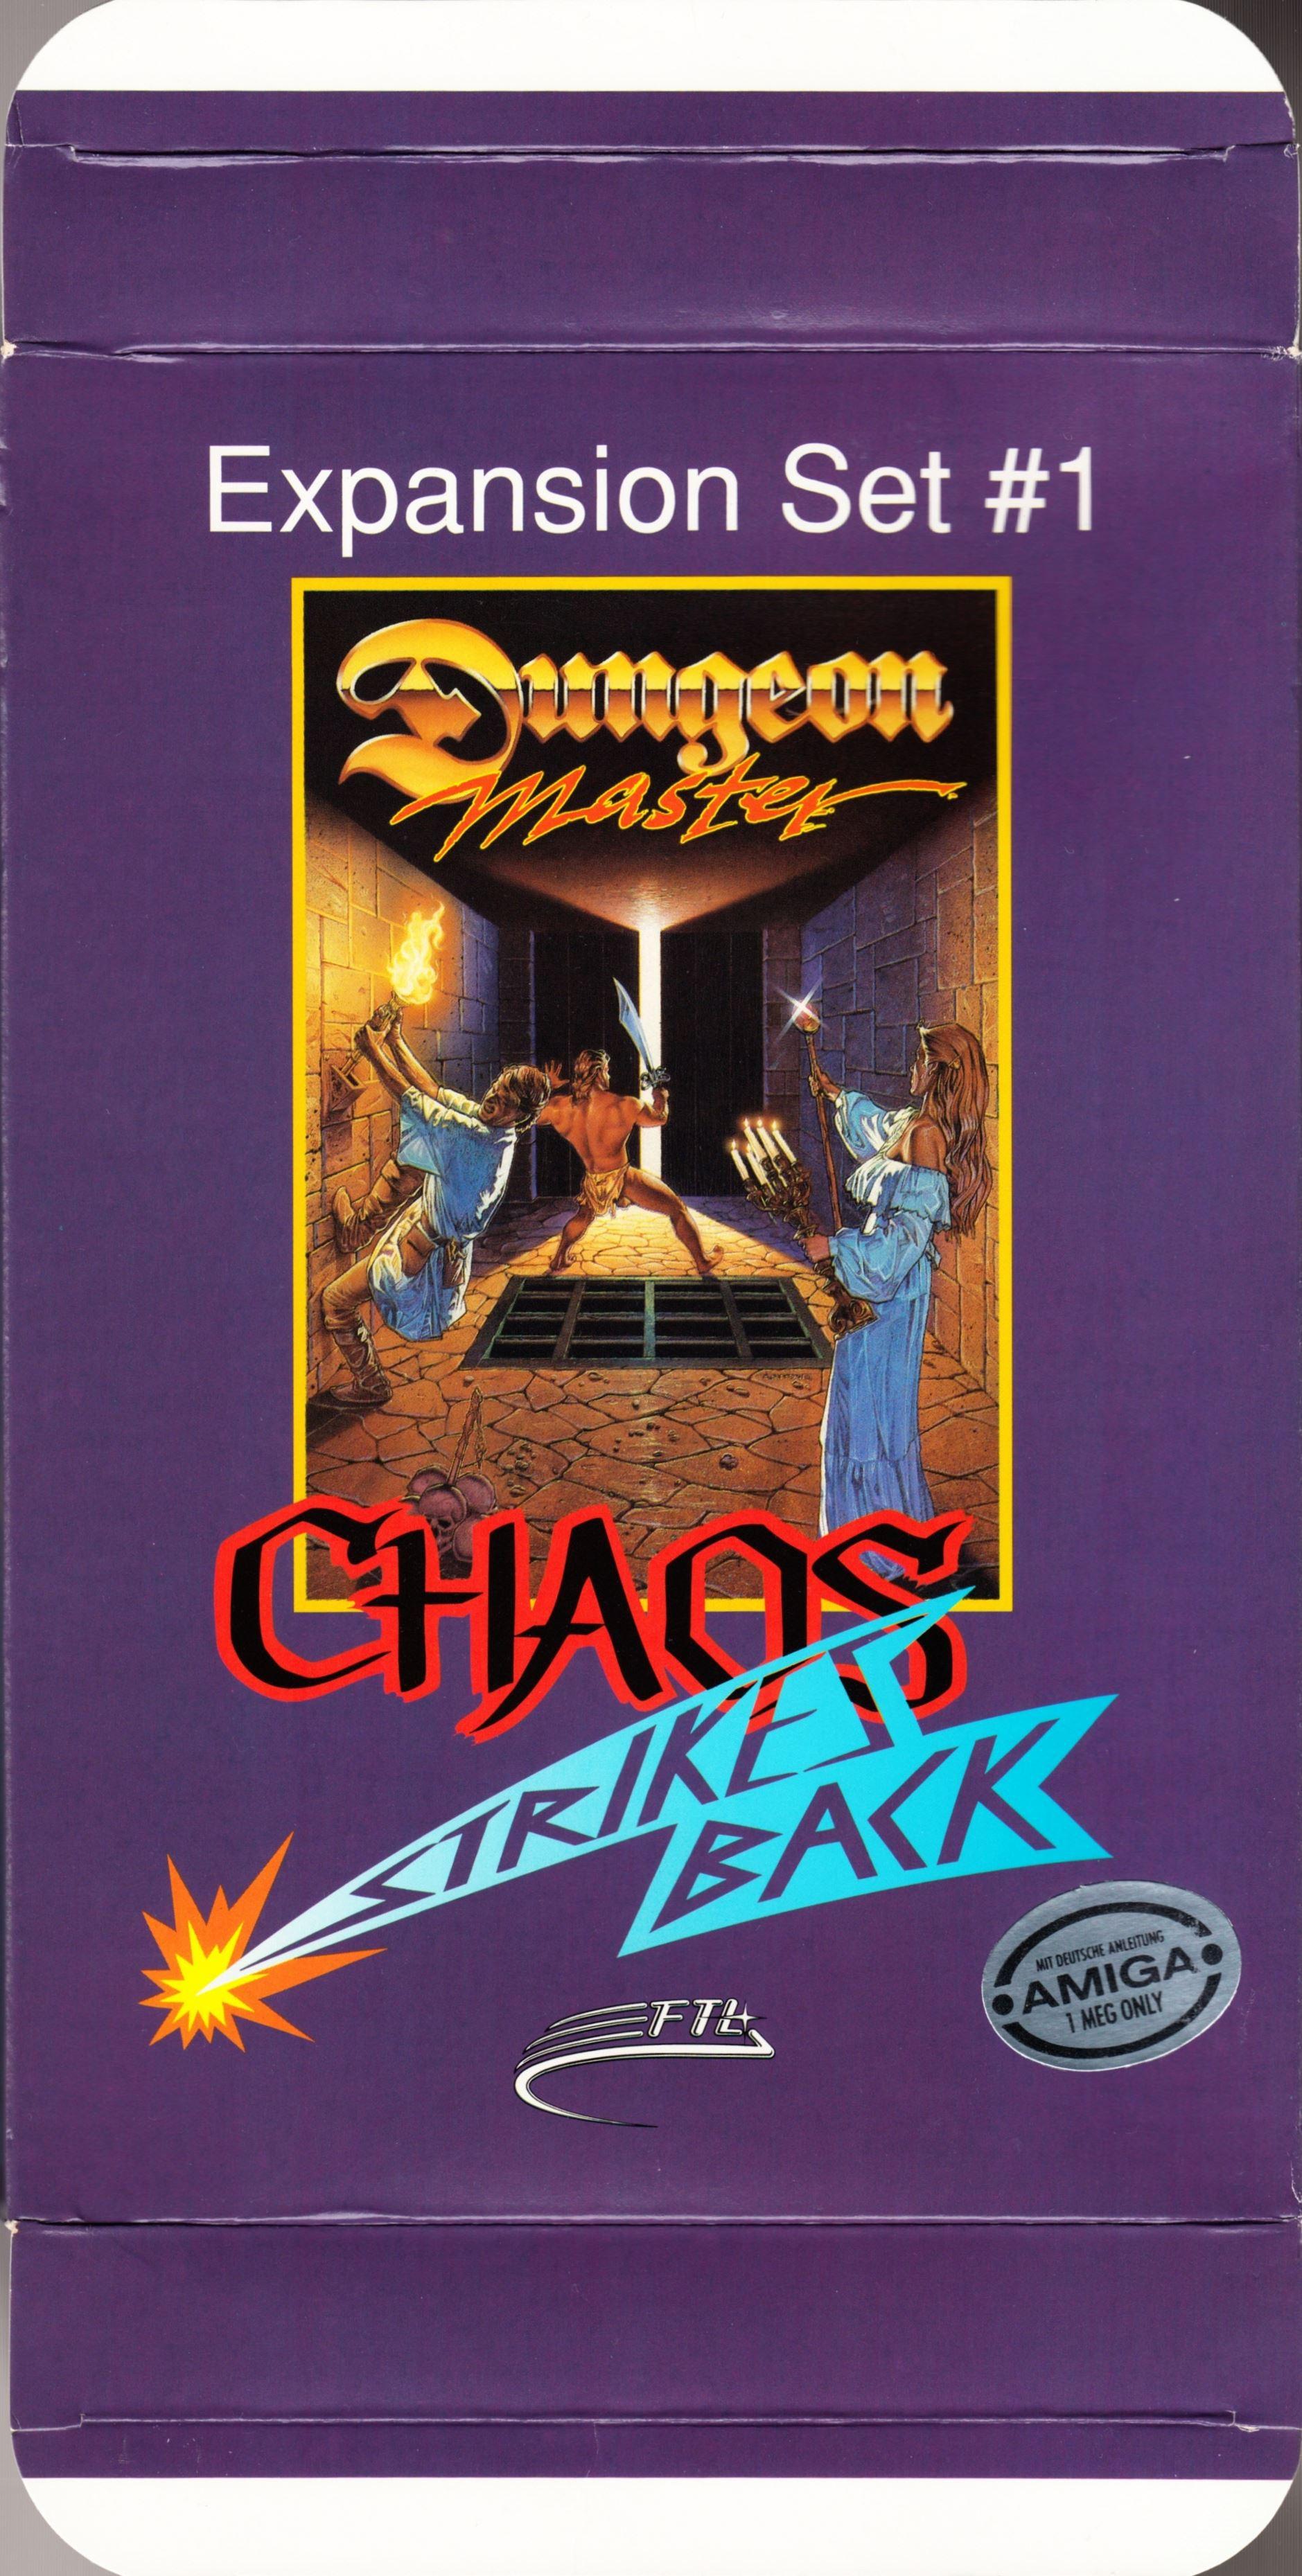 Game - Chaos Strikes Back - DE - Amiga - Box - Front Top Bottom - Scan